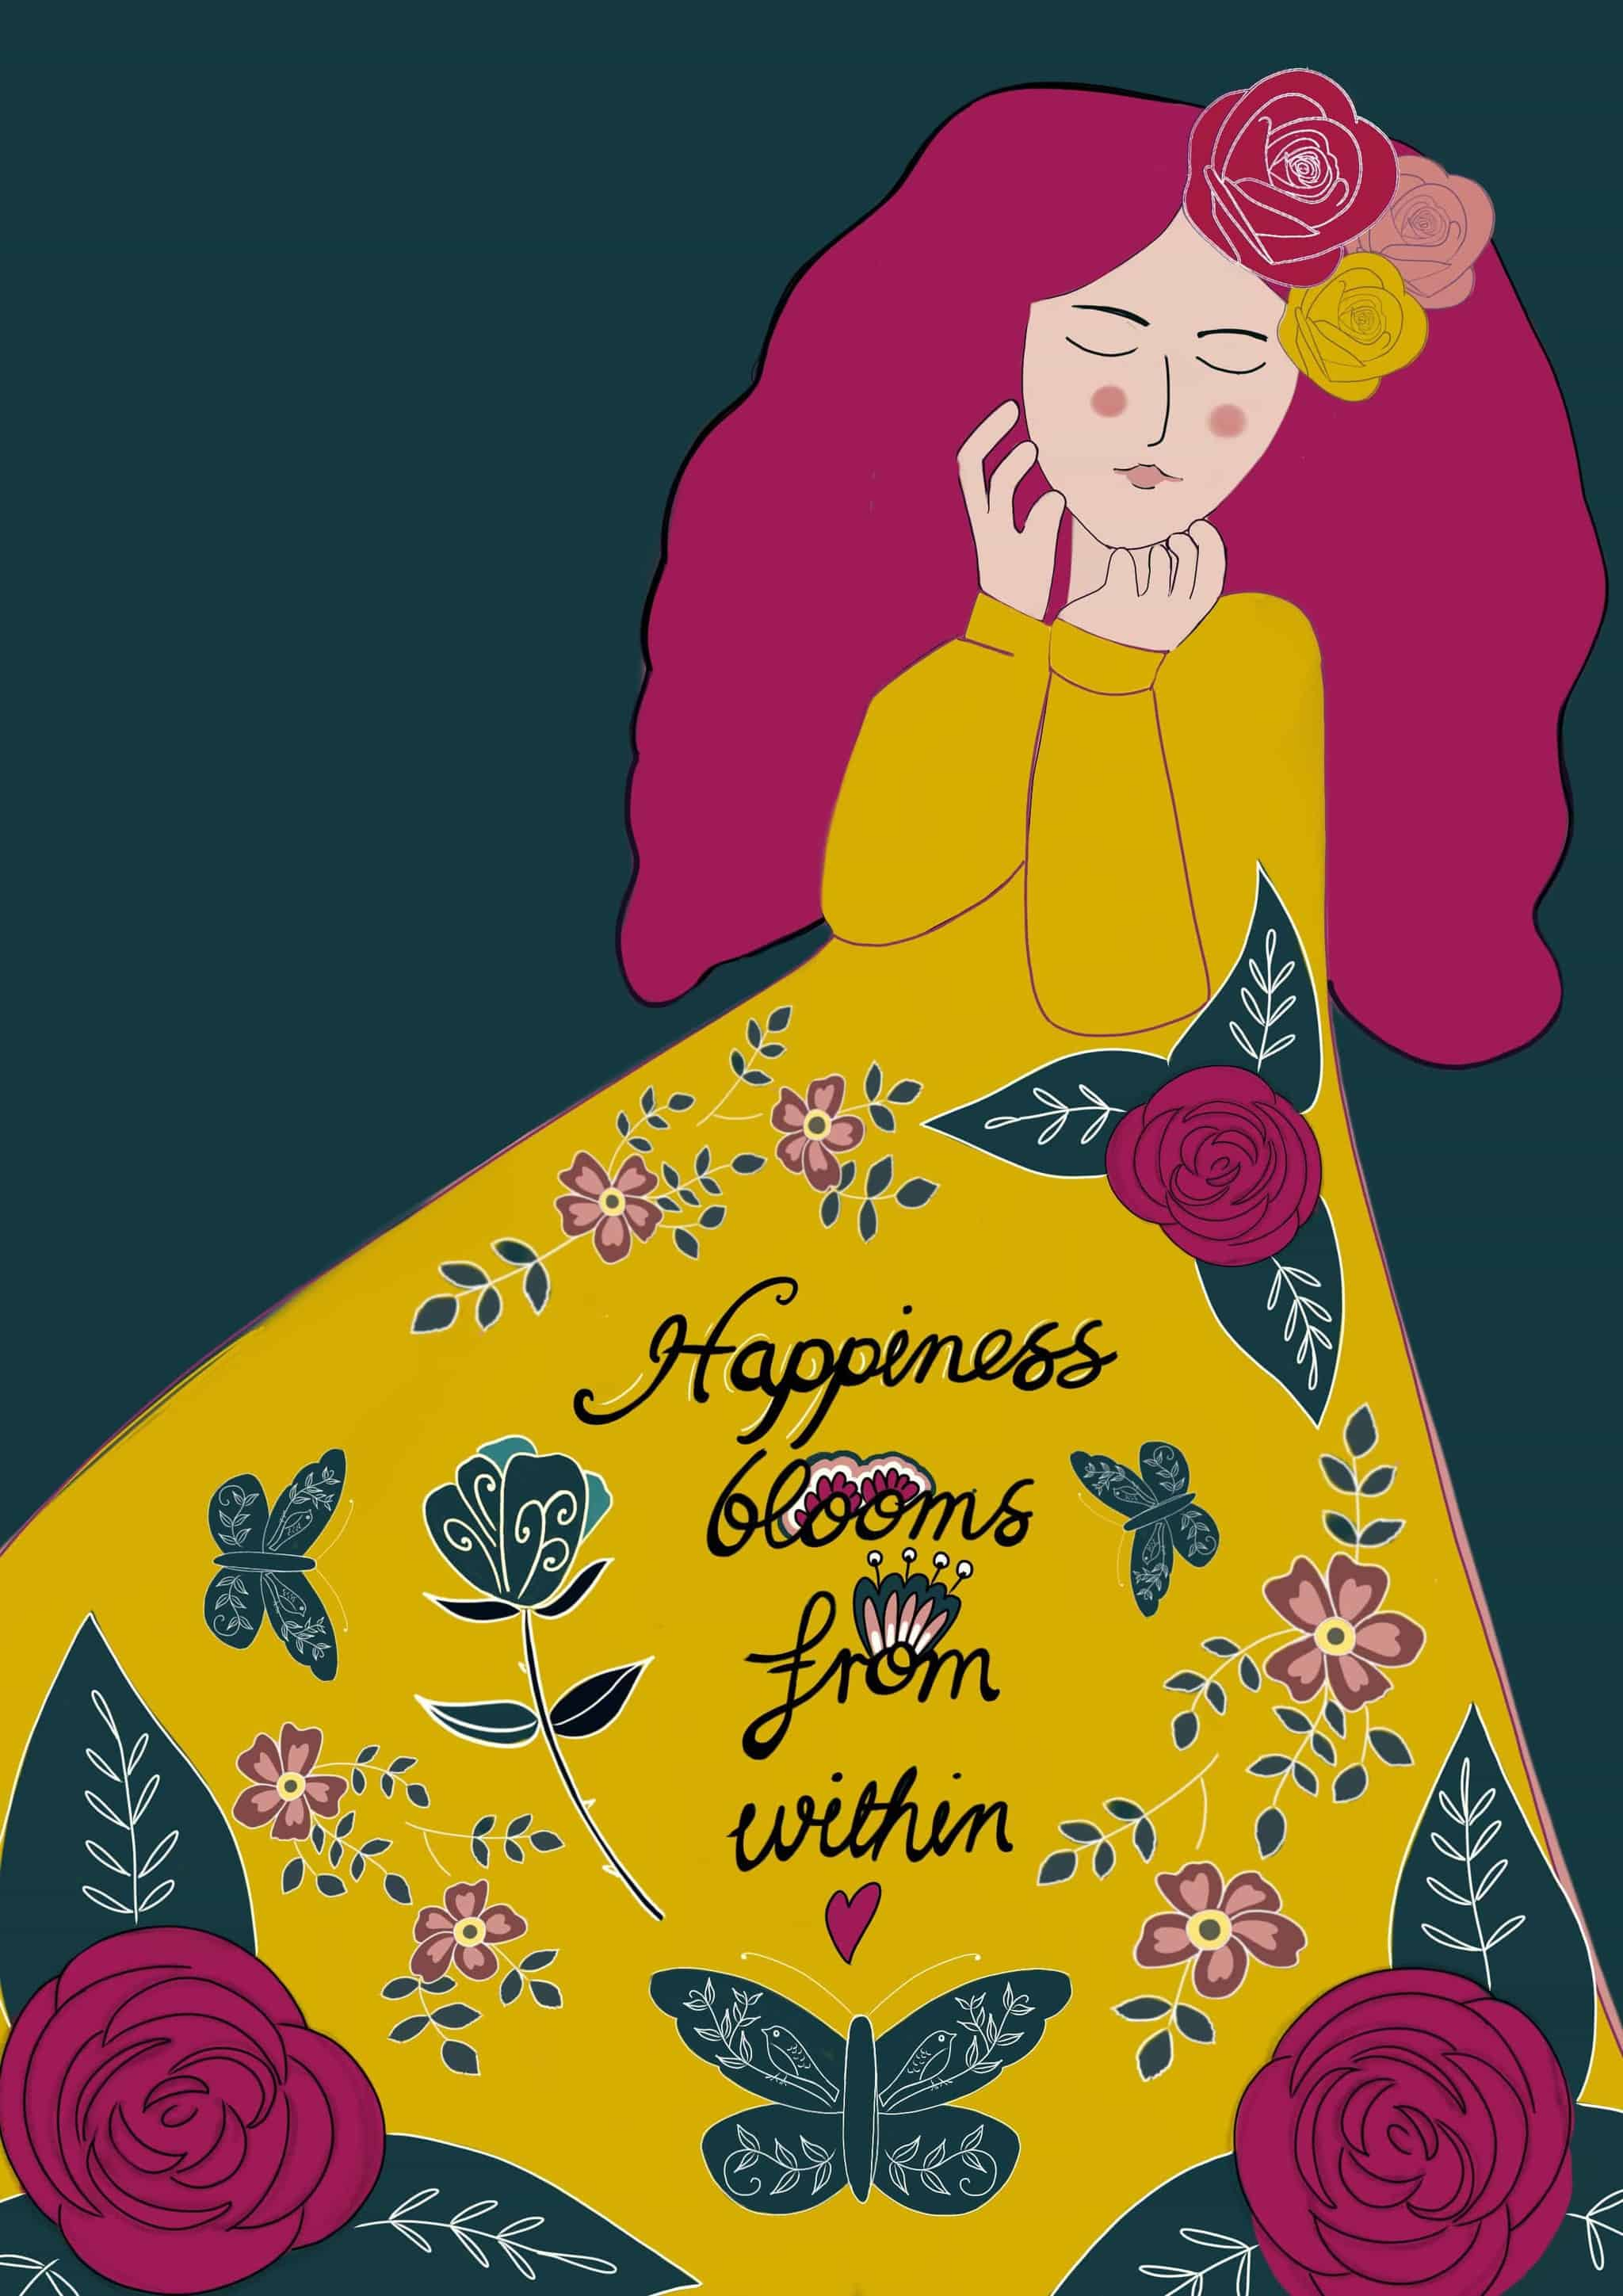 Happiness blooms from within. ✨😀💕 IMG_4234